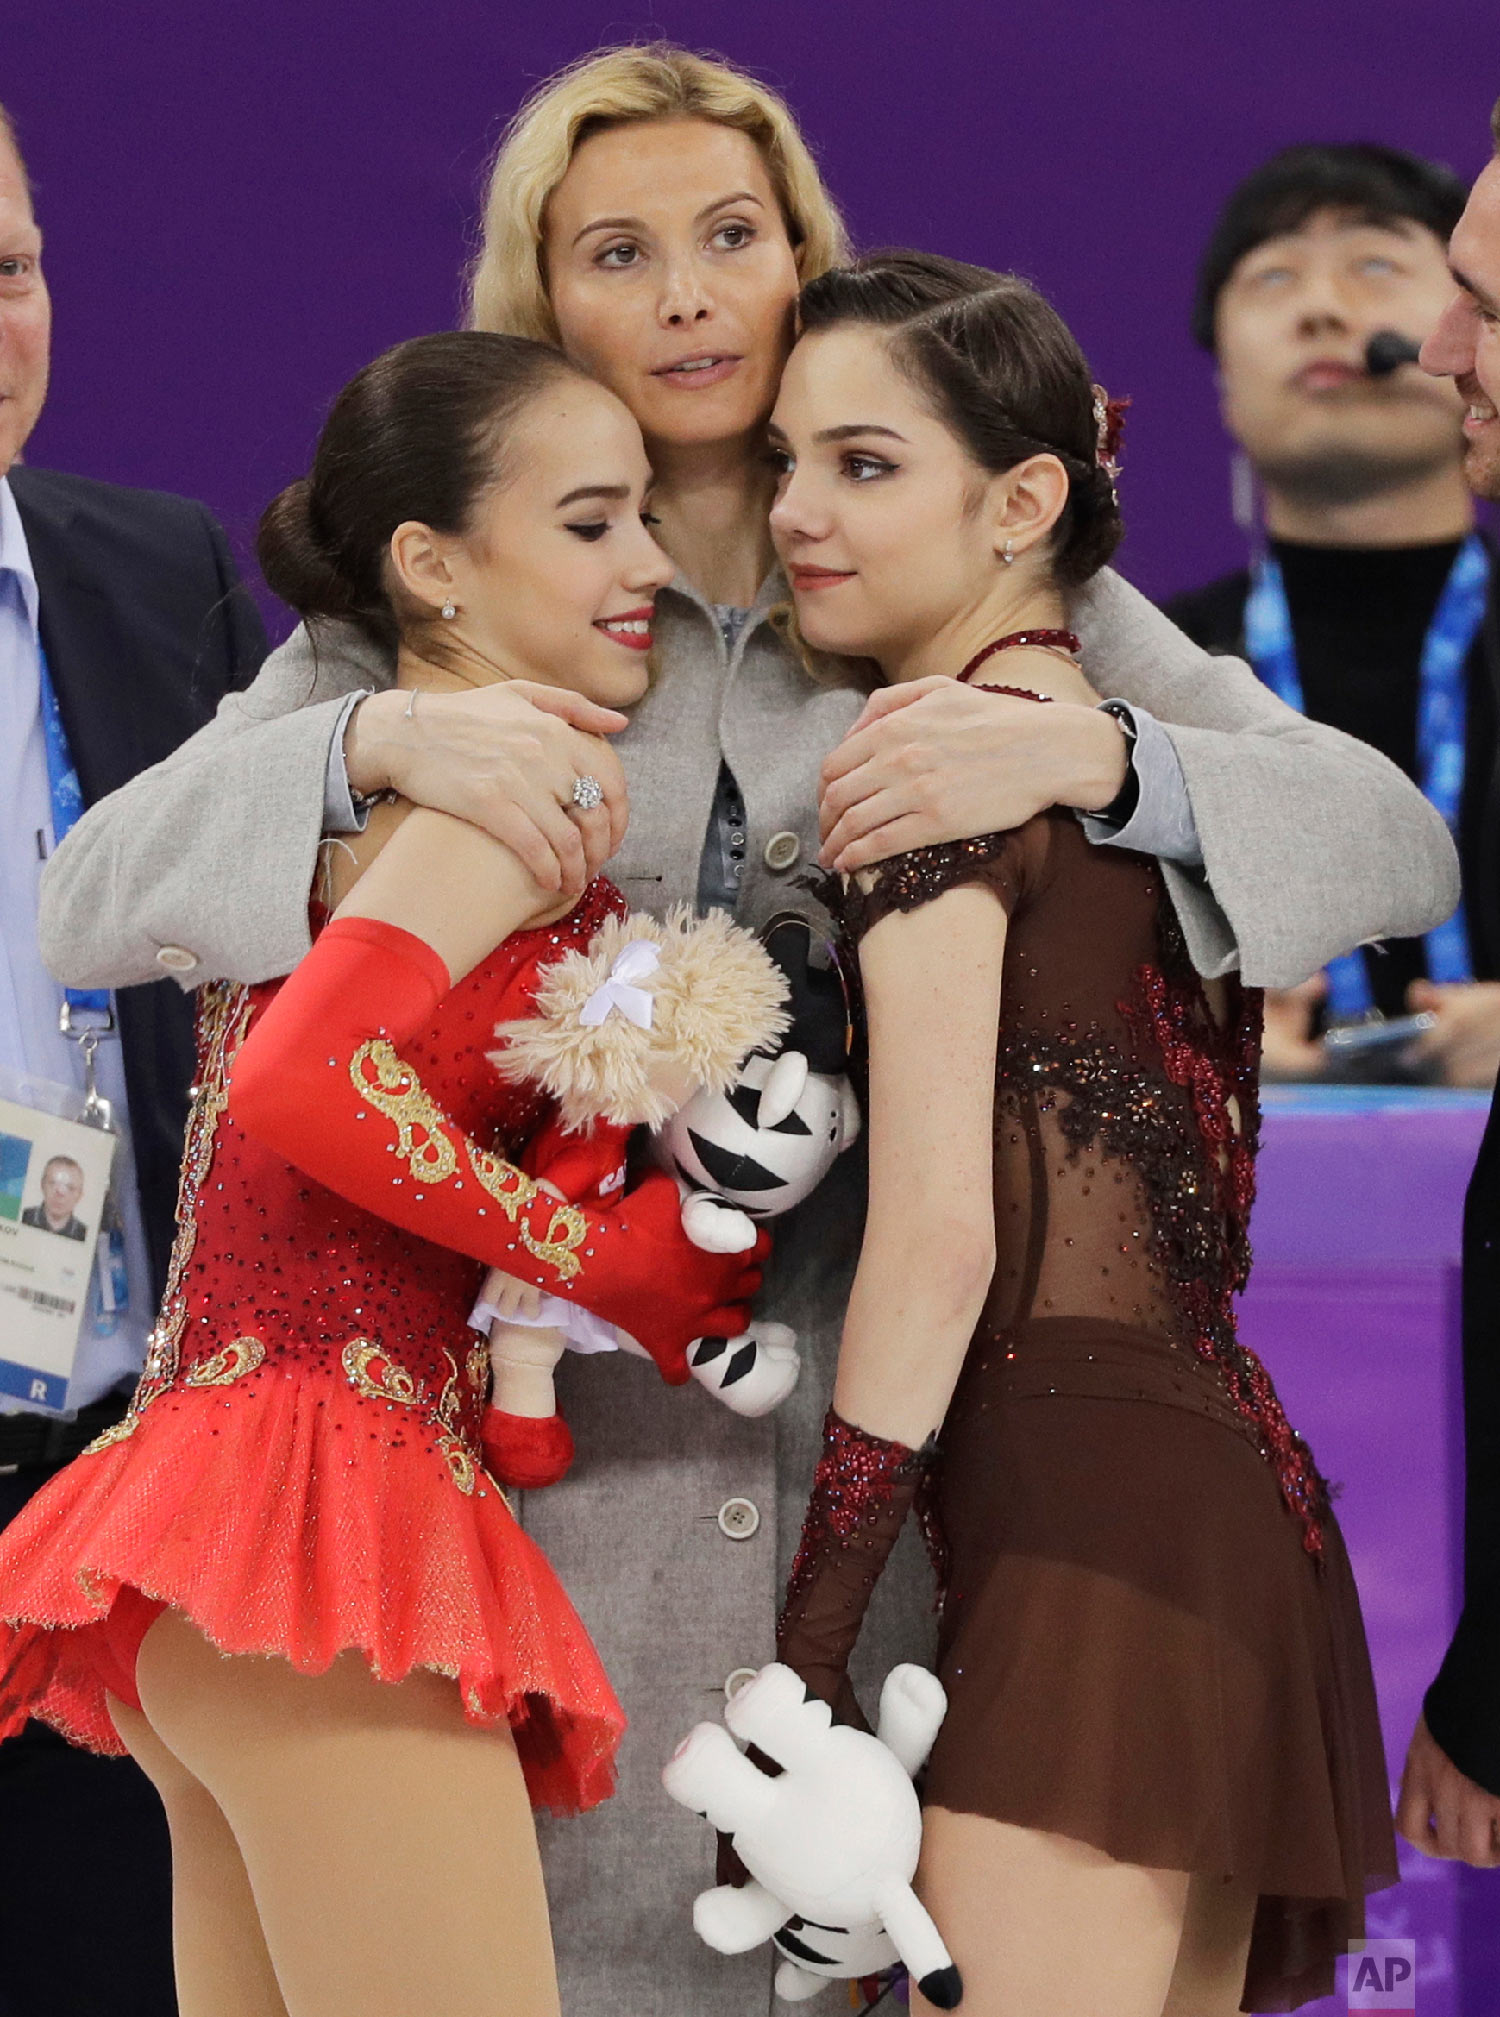 Gold medalist Alina Zagitova, left, and silver medalist Evgenia Medvedeva, both representing the Olympic Athletes of Russia (OAR), are embraced by their coach, Eteri Georgievna Tutberidze, at the women's free figure skating final at the 2018 Winter Olympics in Gangneung, South Korea, on Feb. 23, 2018.(AP Photo/David J. Phillip)